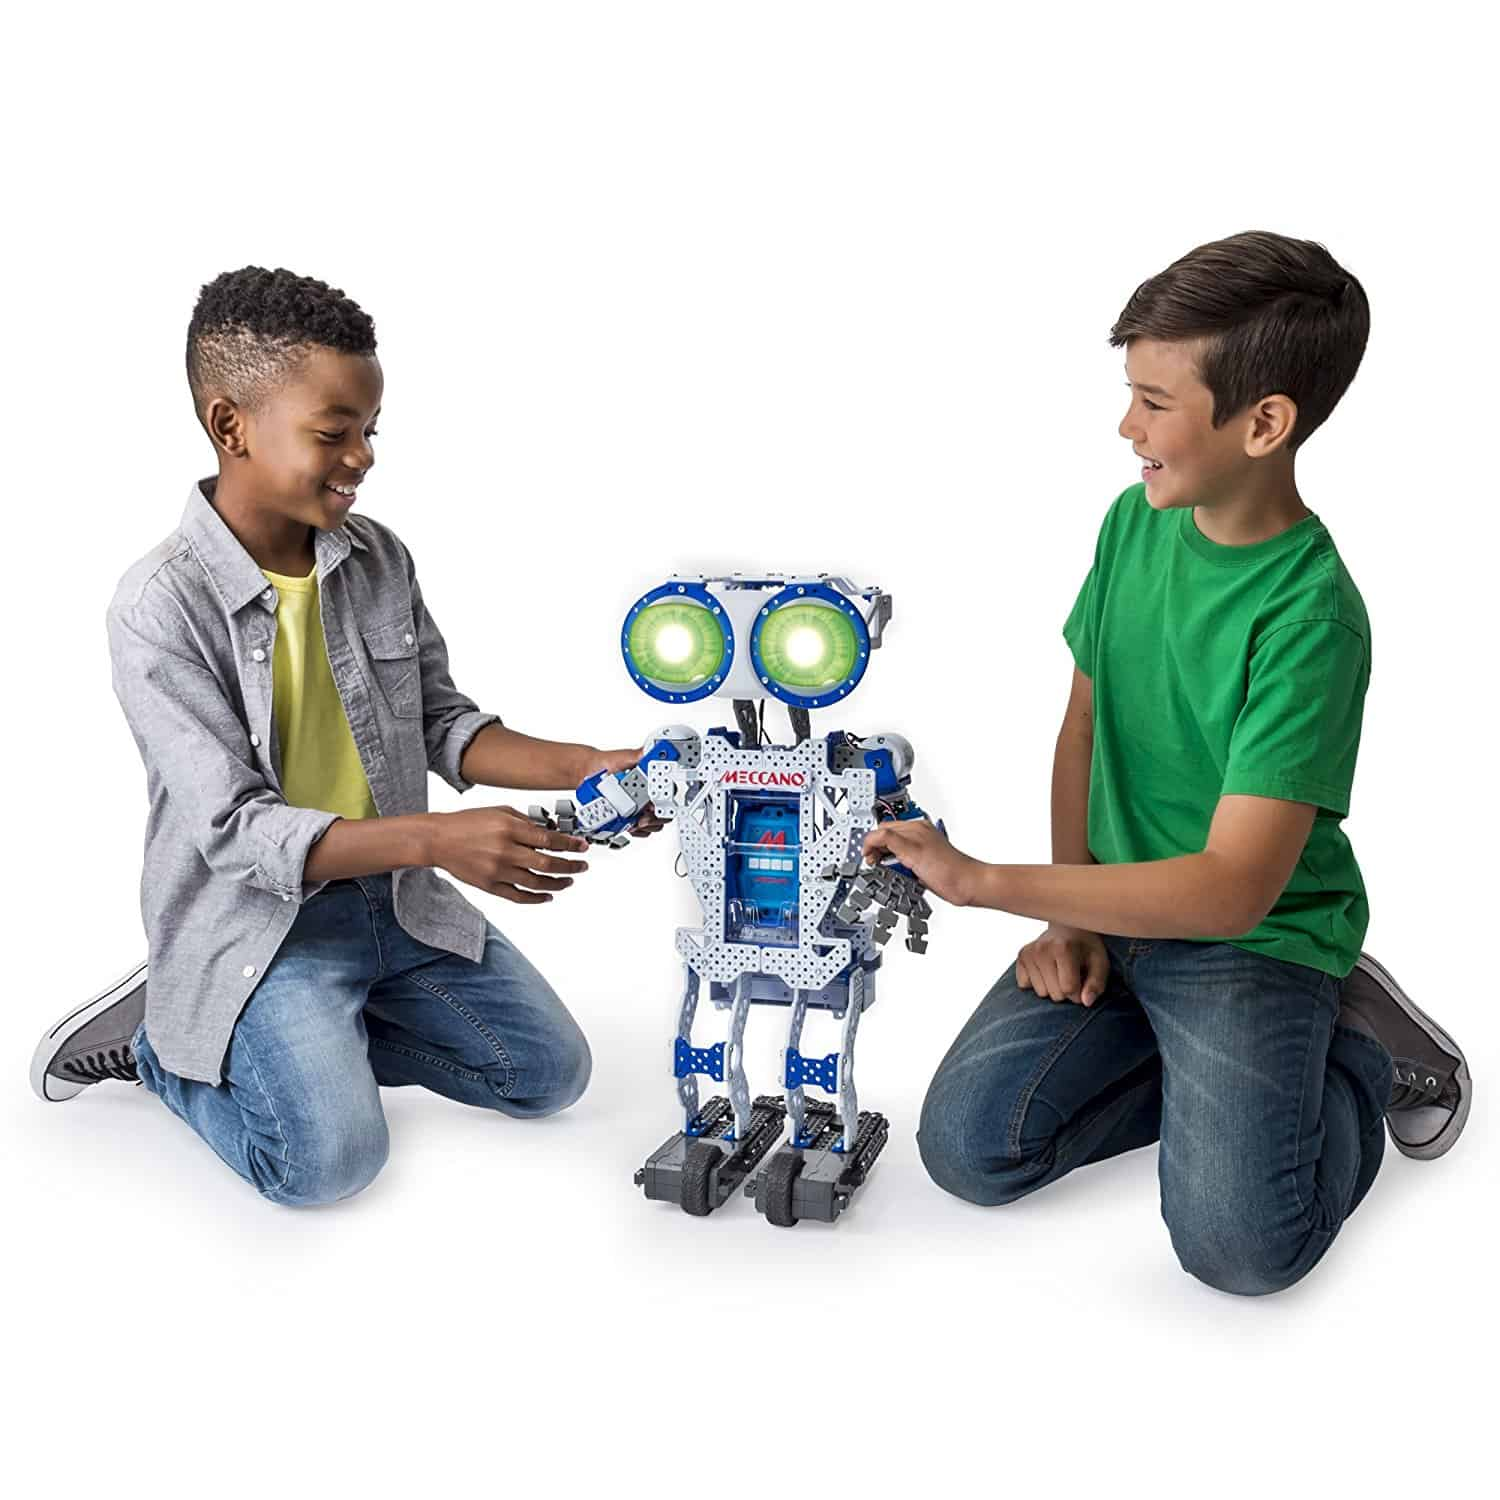 The Best Of Stem toys for 8 Year Olds Pictures